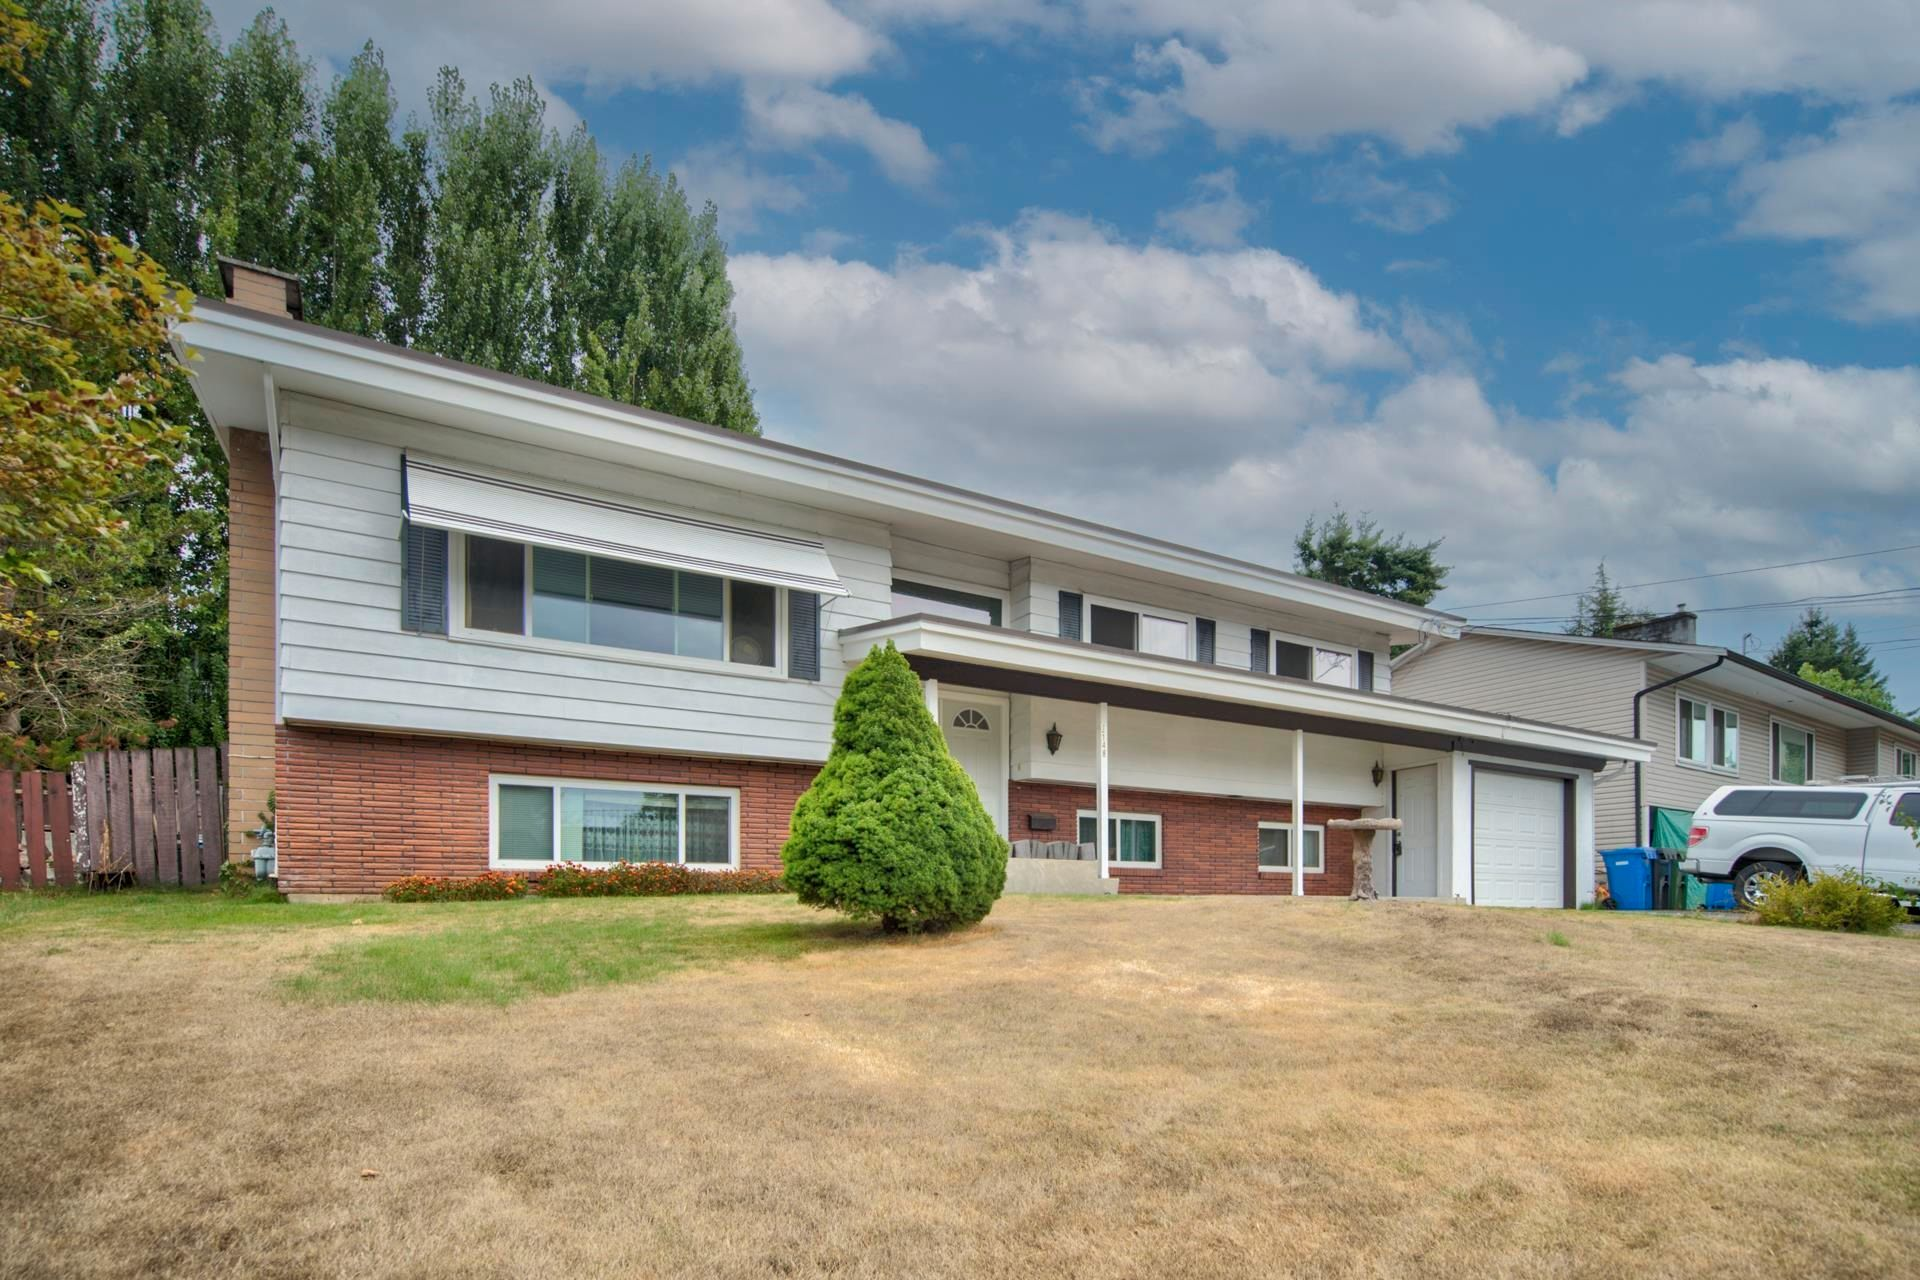 Main Photo: 2148 OPAL Place in Abbotsford: Central Abbotsford House for sale : MLS®# R2614701